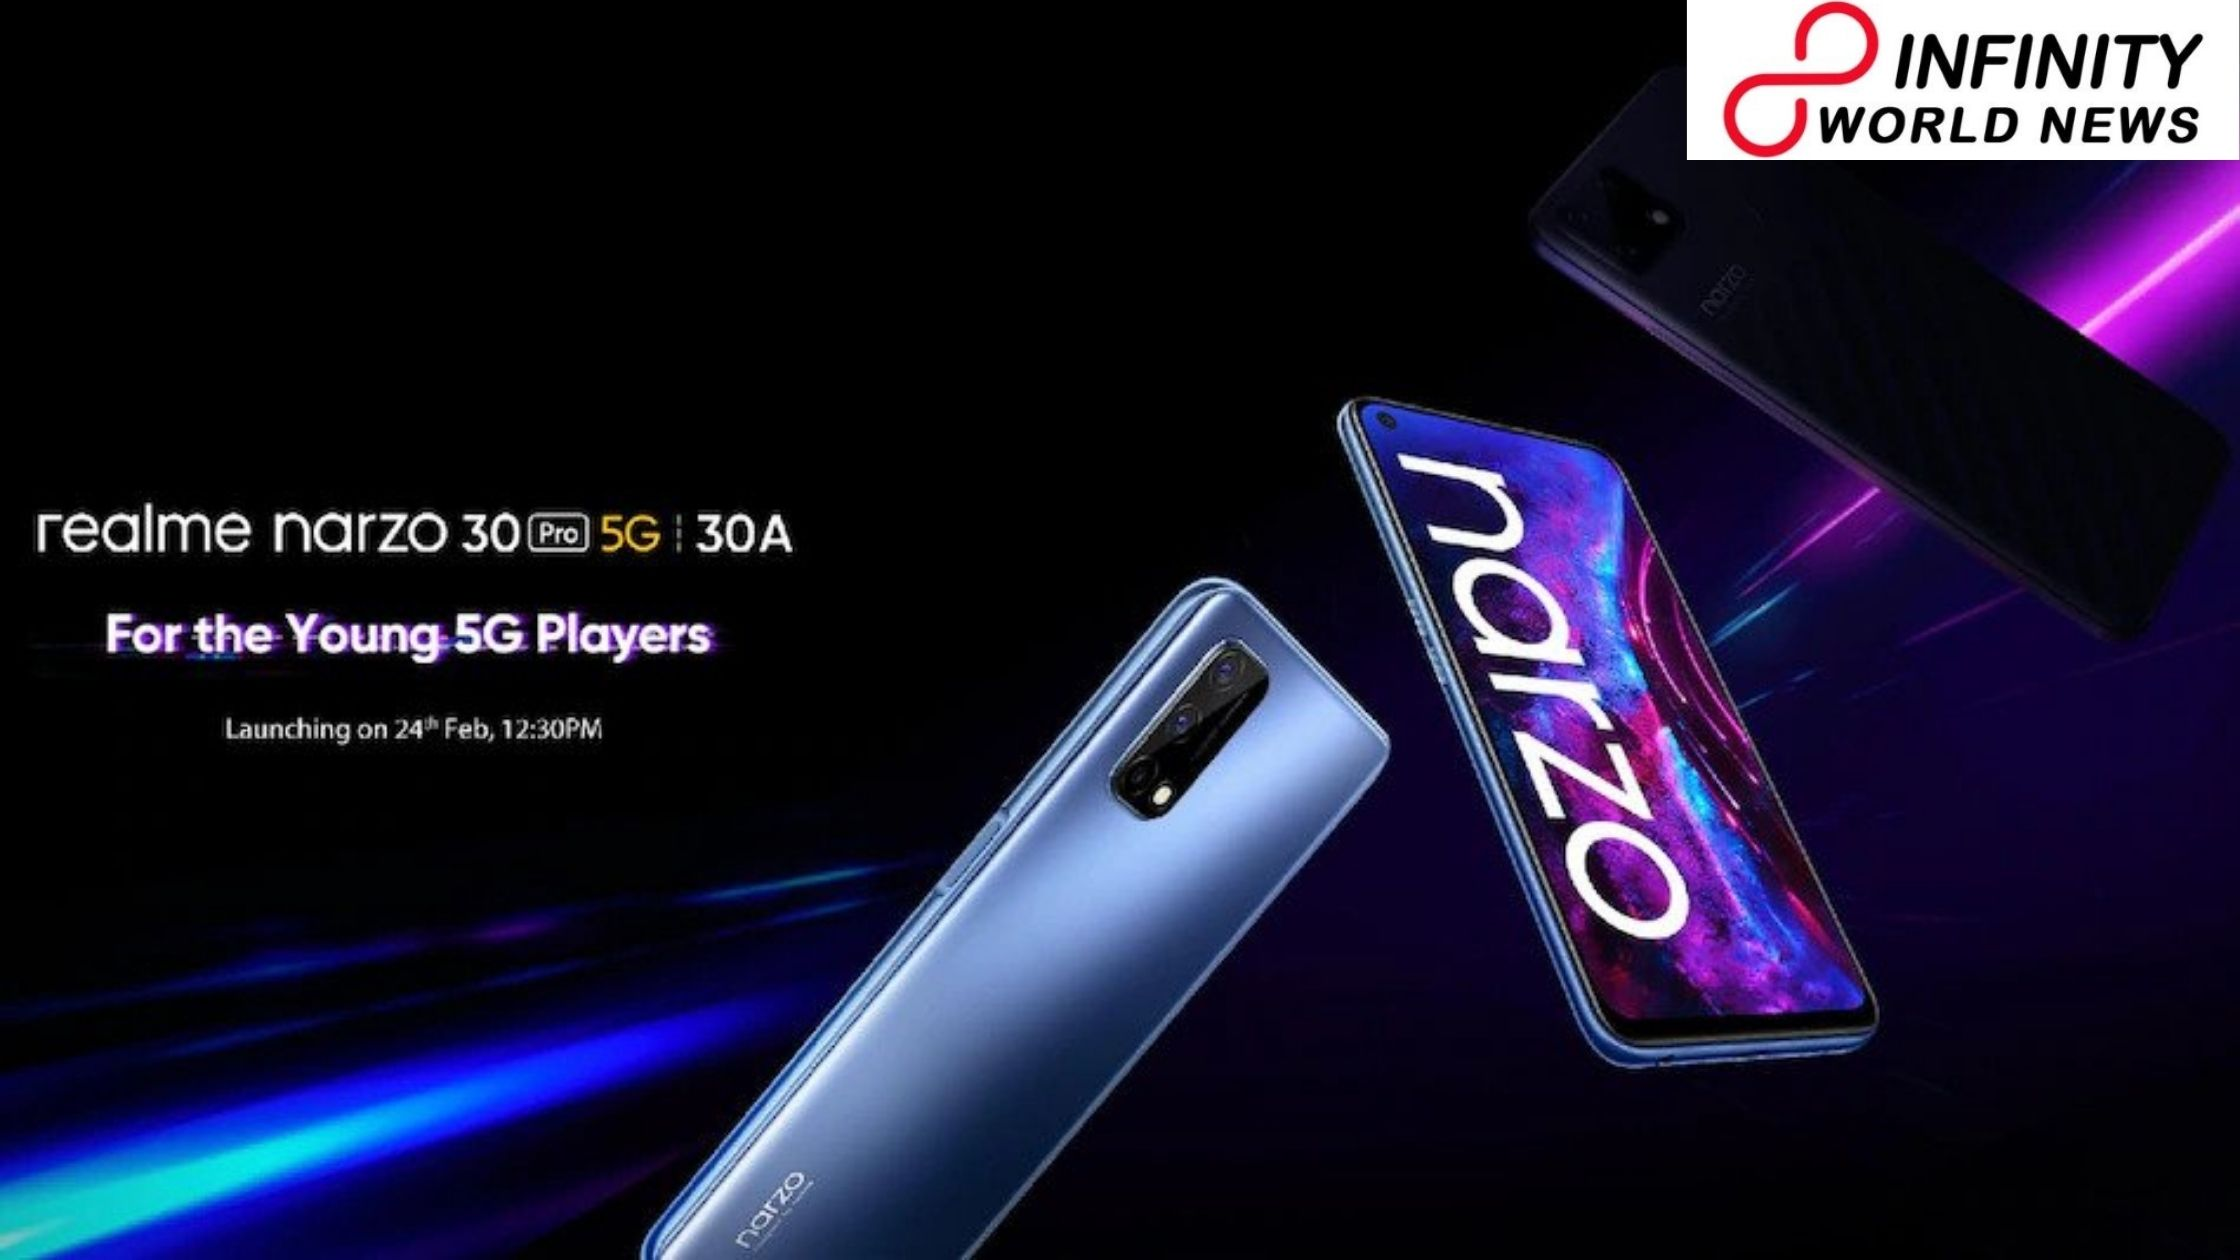 Realme Narzo 30A Slanted to Come With Helio G85 SoC, Android 10 through Geekbench